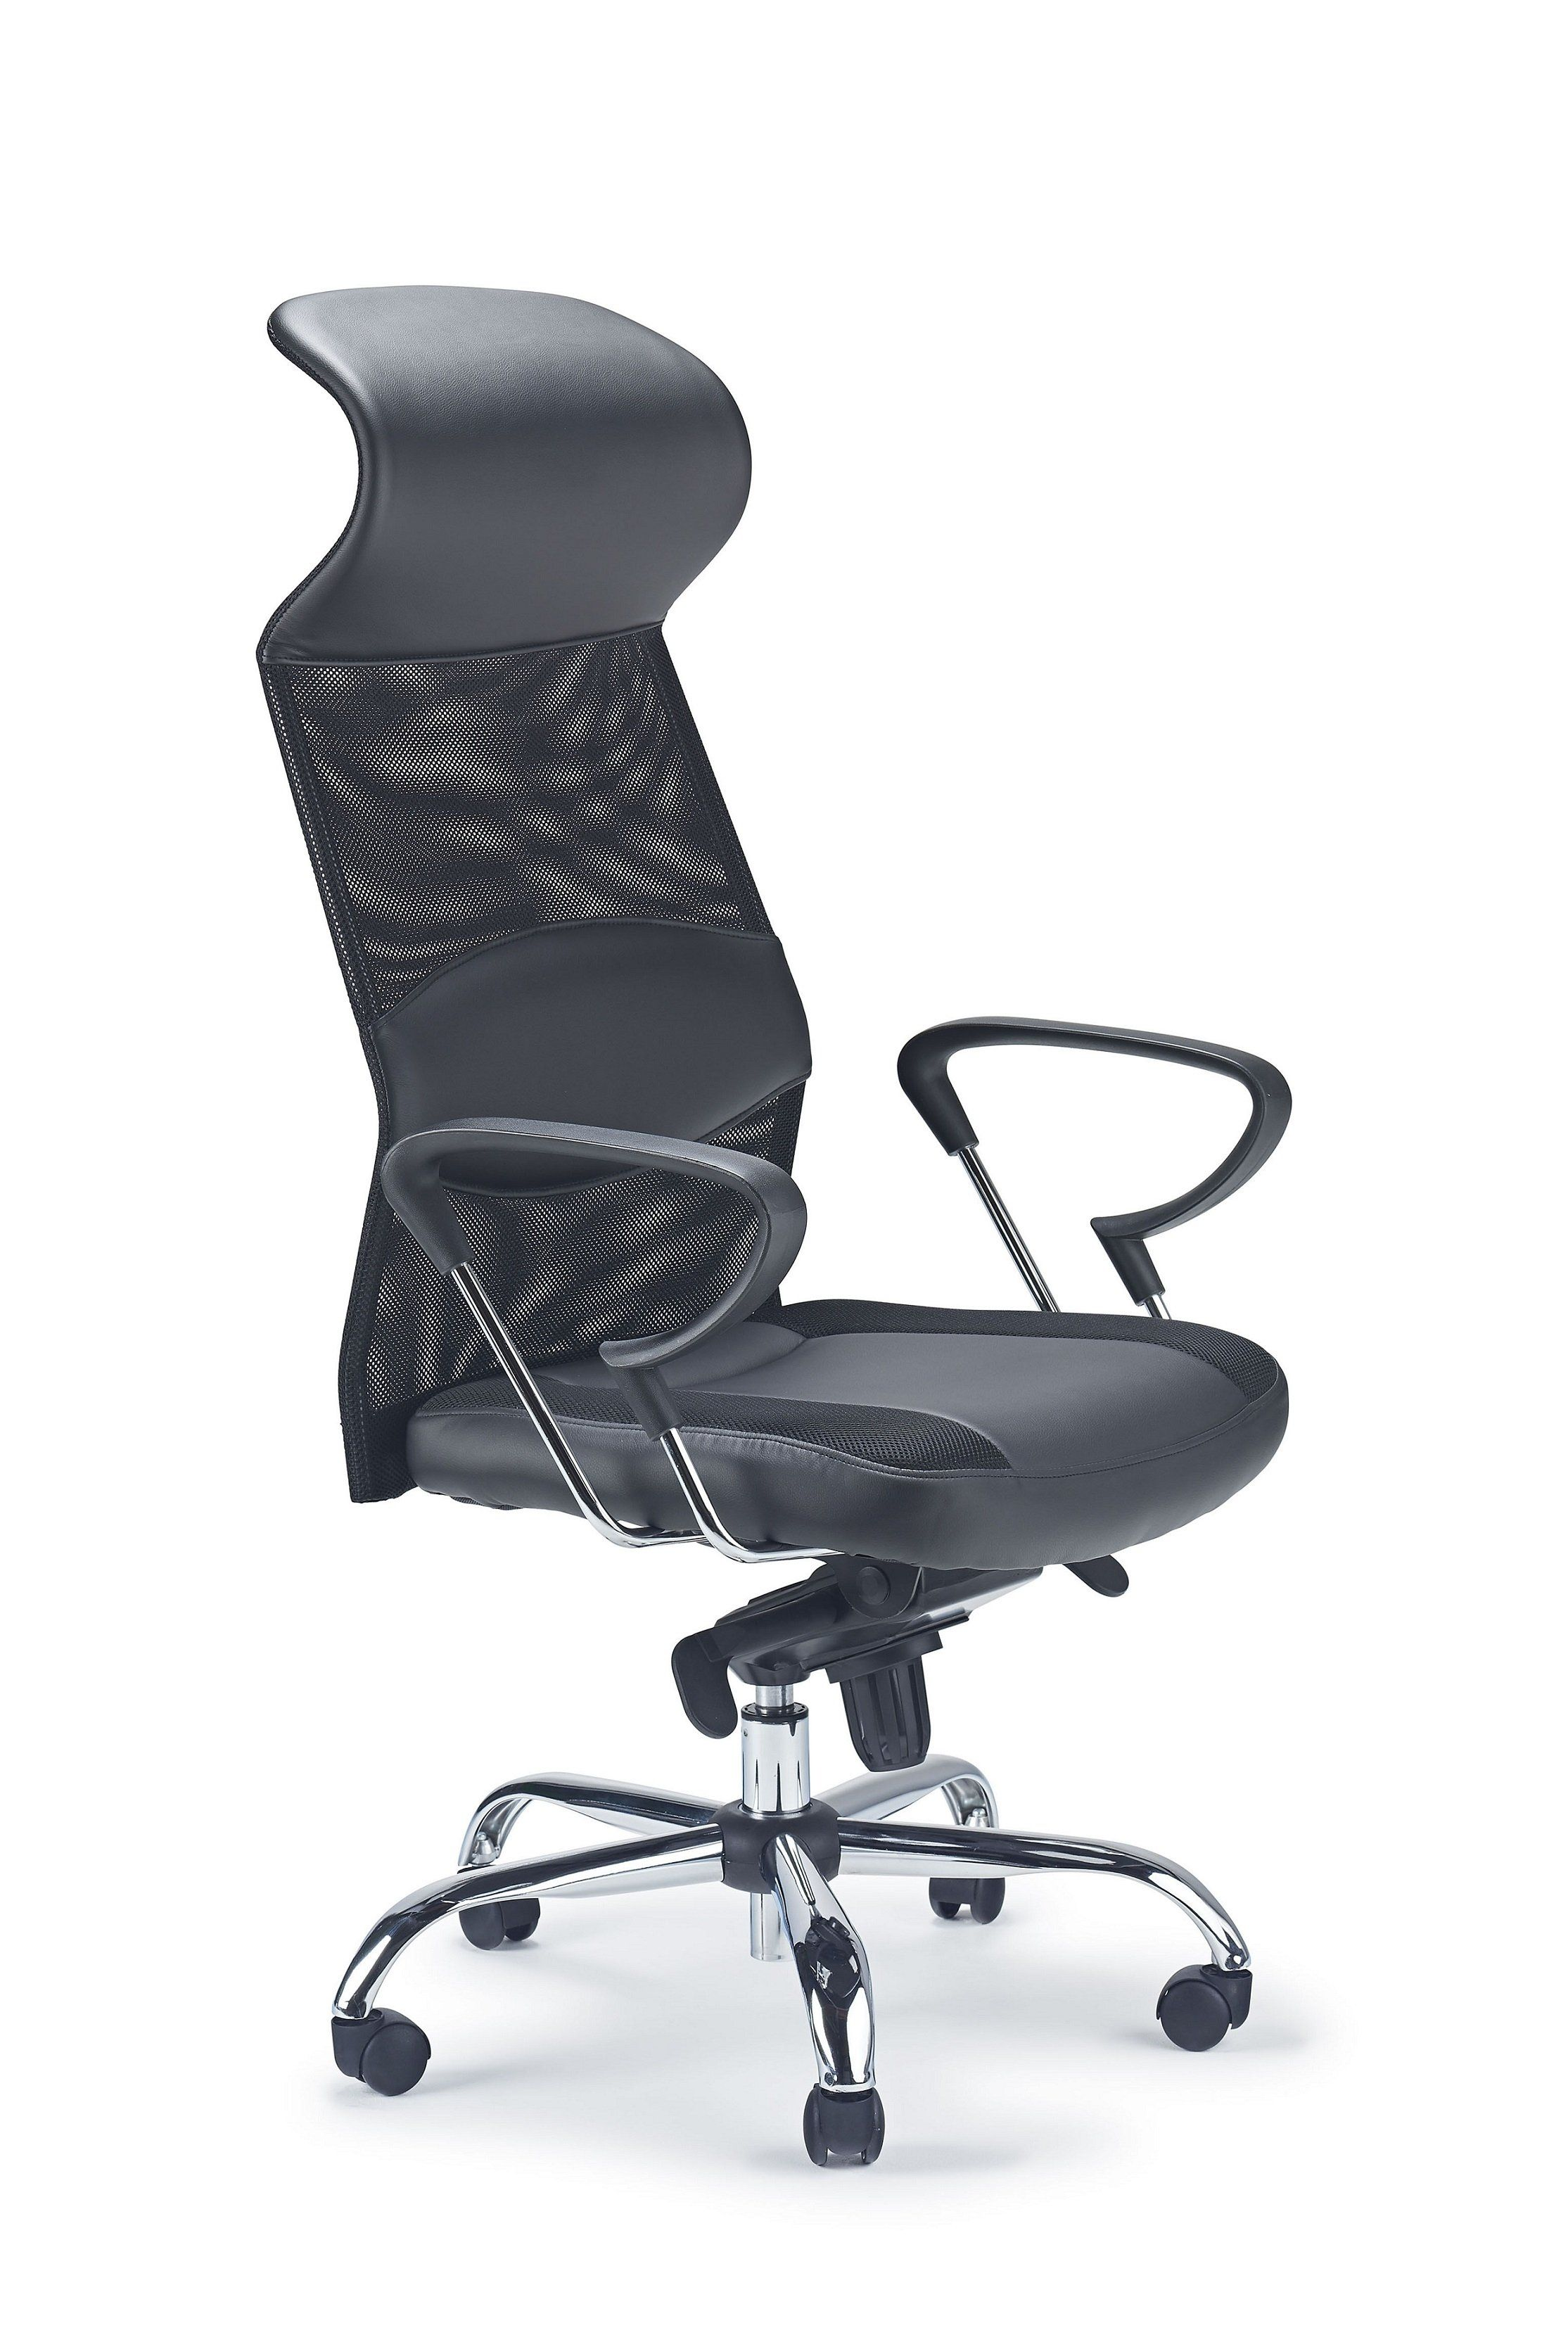 Picture of: Mesh Leather Swivel Chair Good Lumbar Support